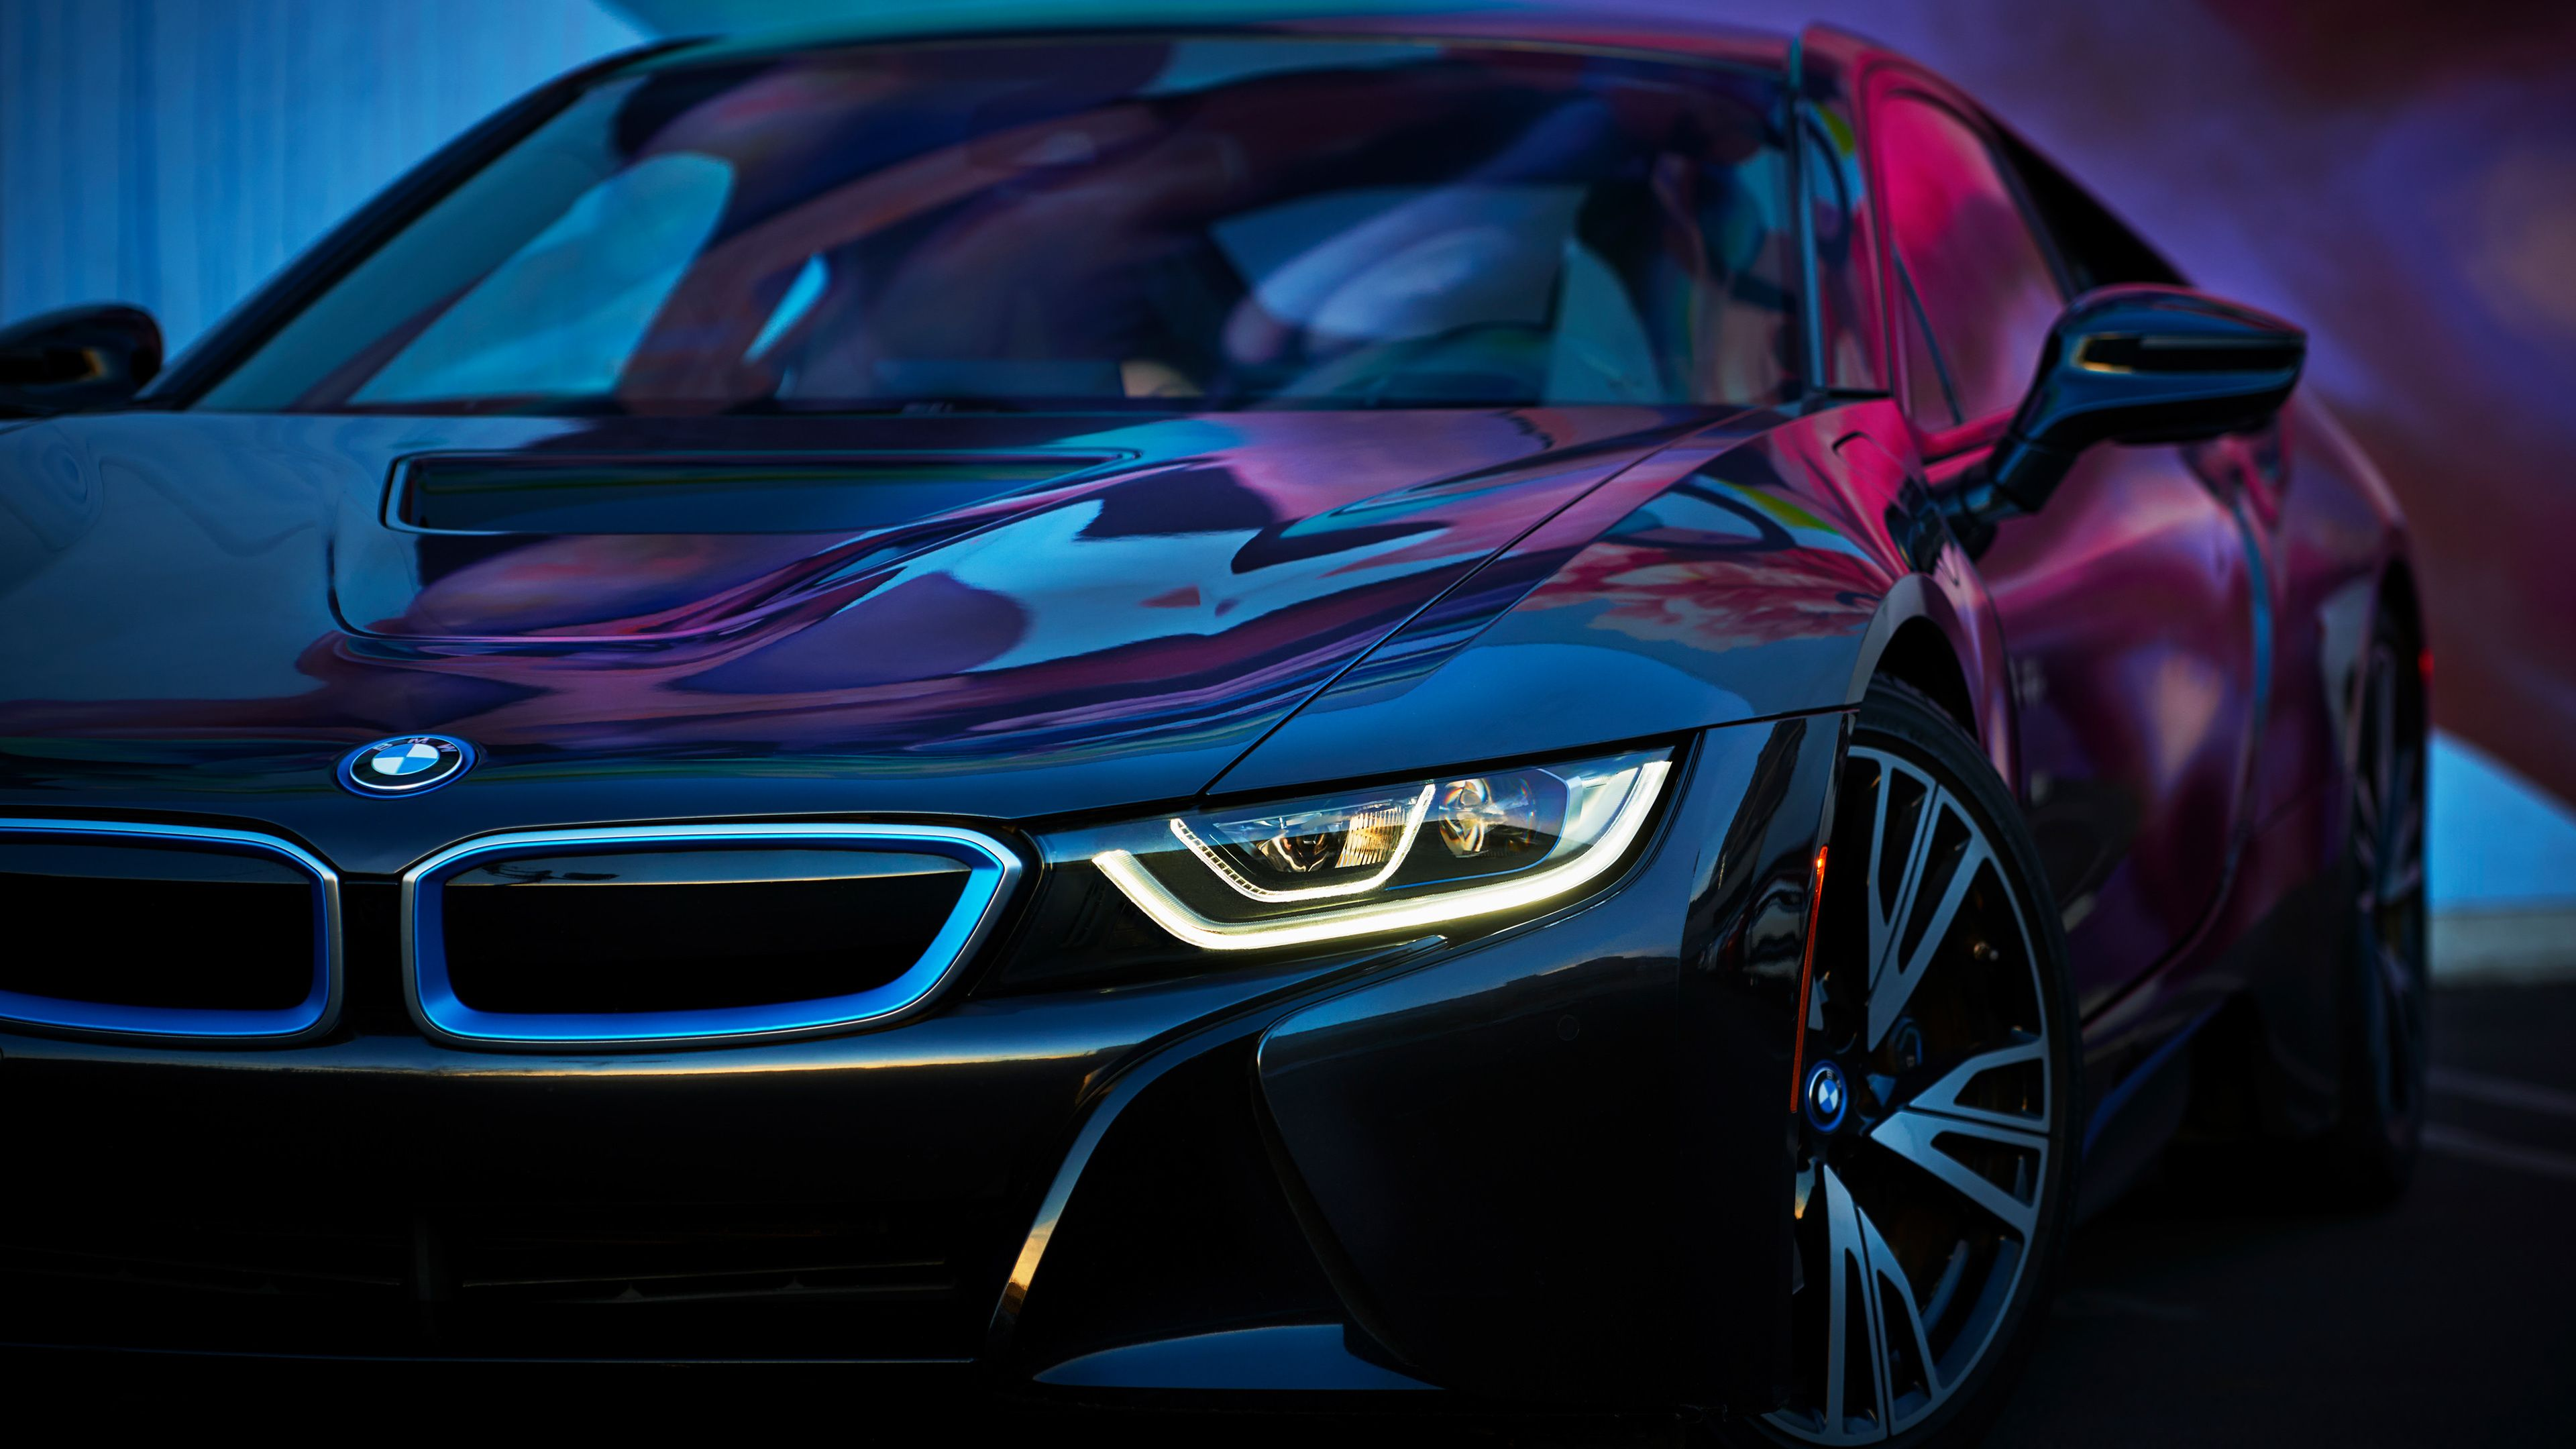 7fon wallpapers published car wallpapers 4k for android operating system mobile devices, but it is possible to download and install car wallpapers 4k for pc or computer with operating systems such as windows 7, 8, 8.1, 10 and mac. 4k Wallpaper Of Cars For Laptop